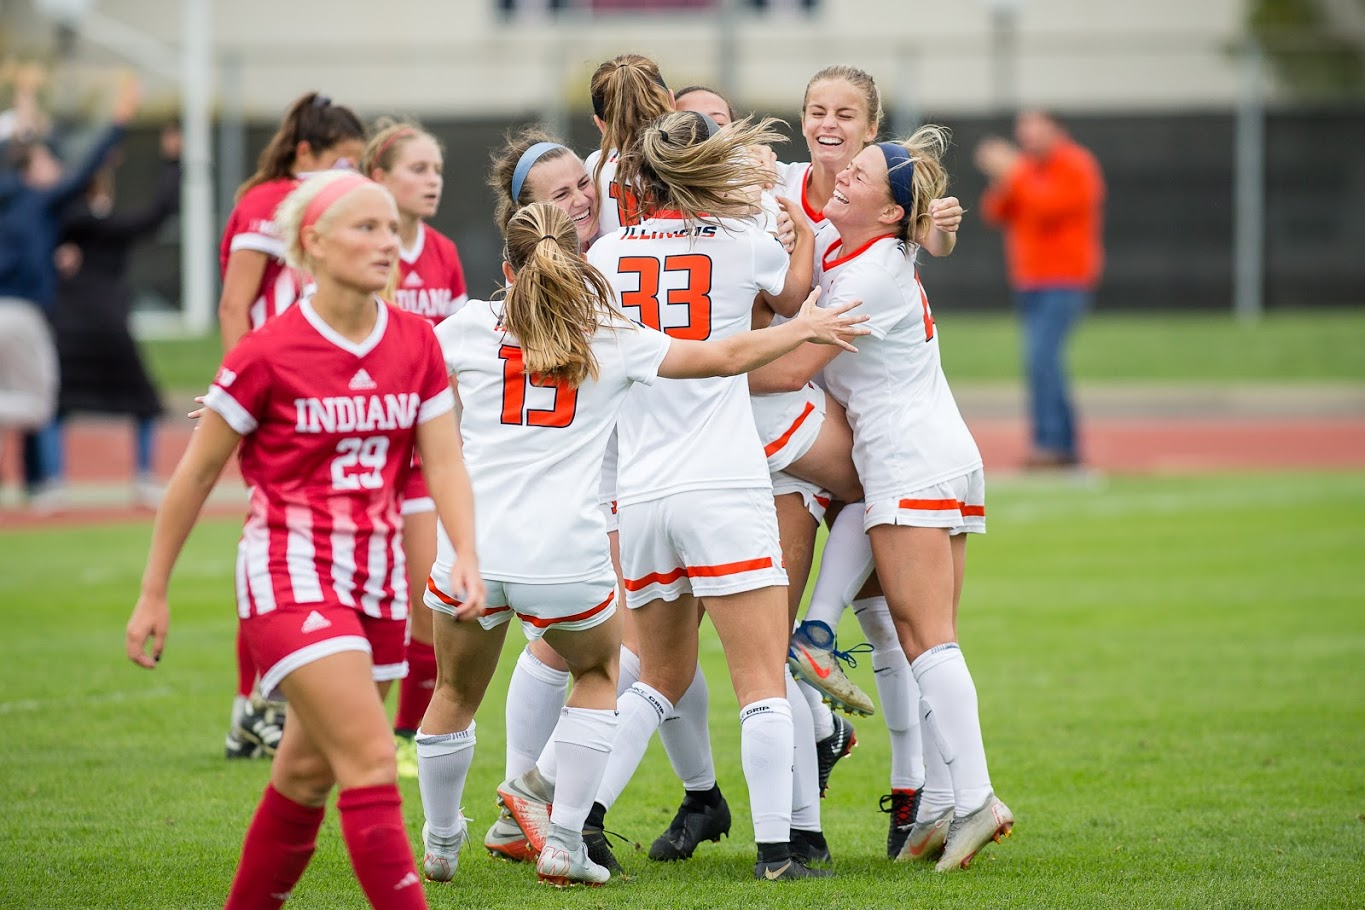 Illinois celebrates after winning the game against Indiana at the Illinois Soccer Stadium on Oct. 14. Illinois hopes to improve their current record of 7-1 when facing off against Iowa and Nebraska this week.